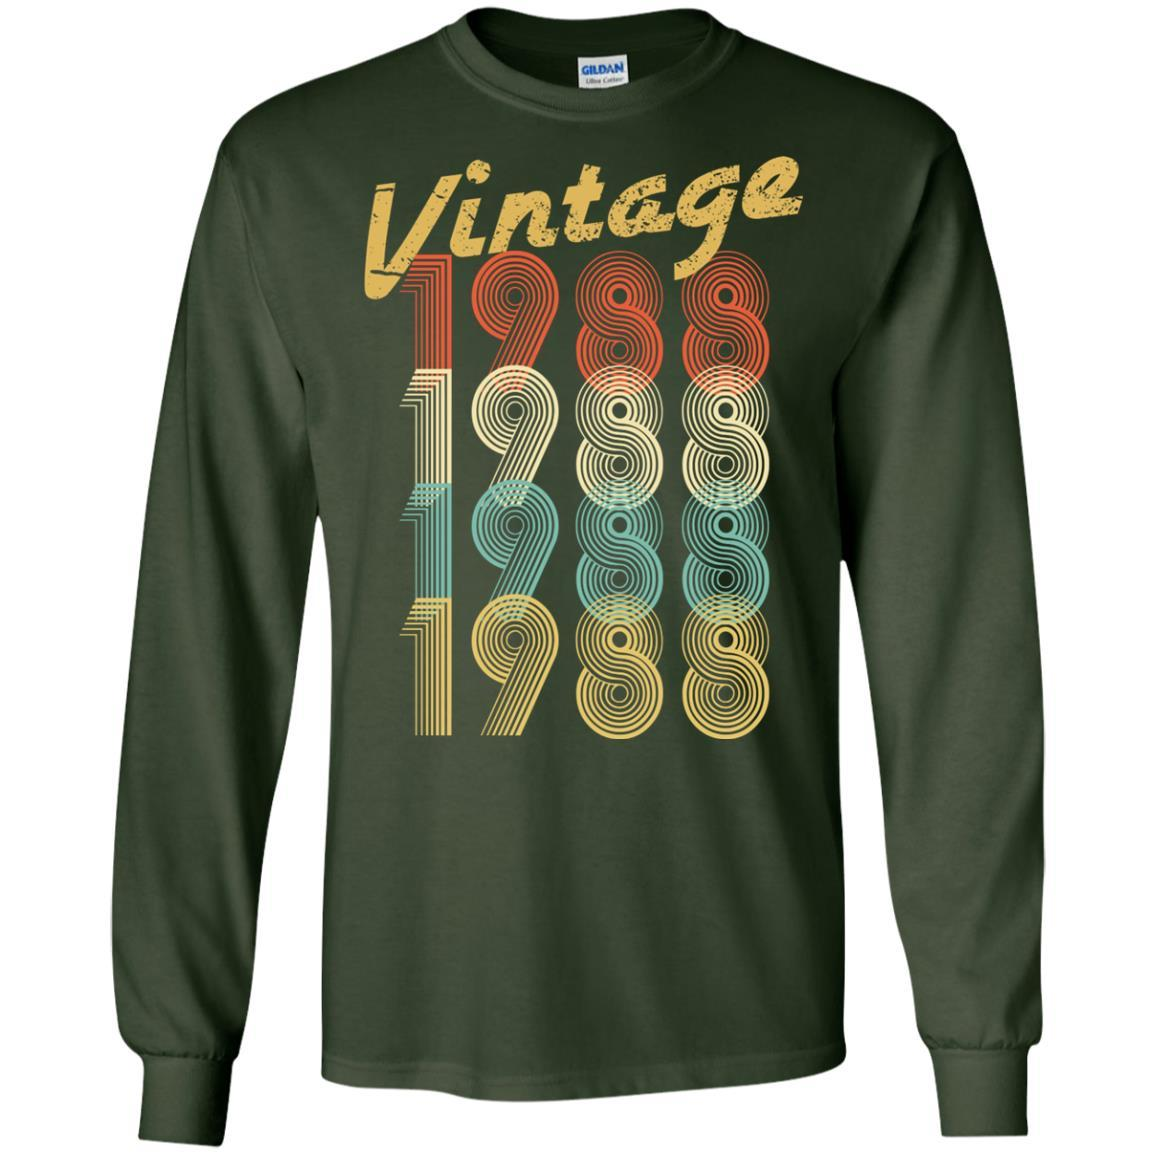 1988 Vintage Funny 30th Birthday Gift Shirt For Him Or Her Long Sleeve 240